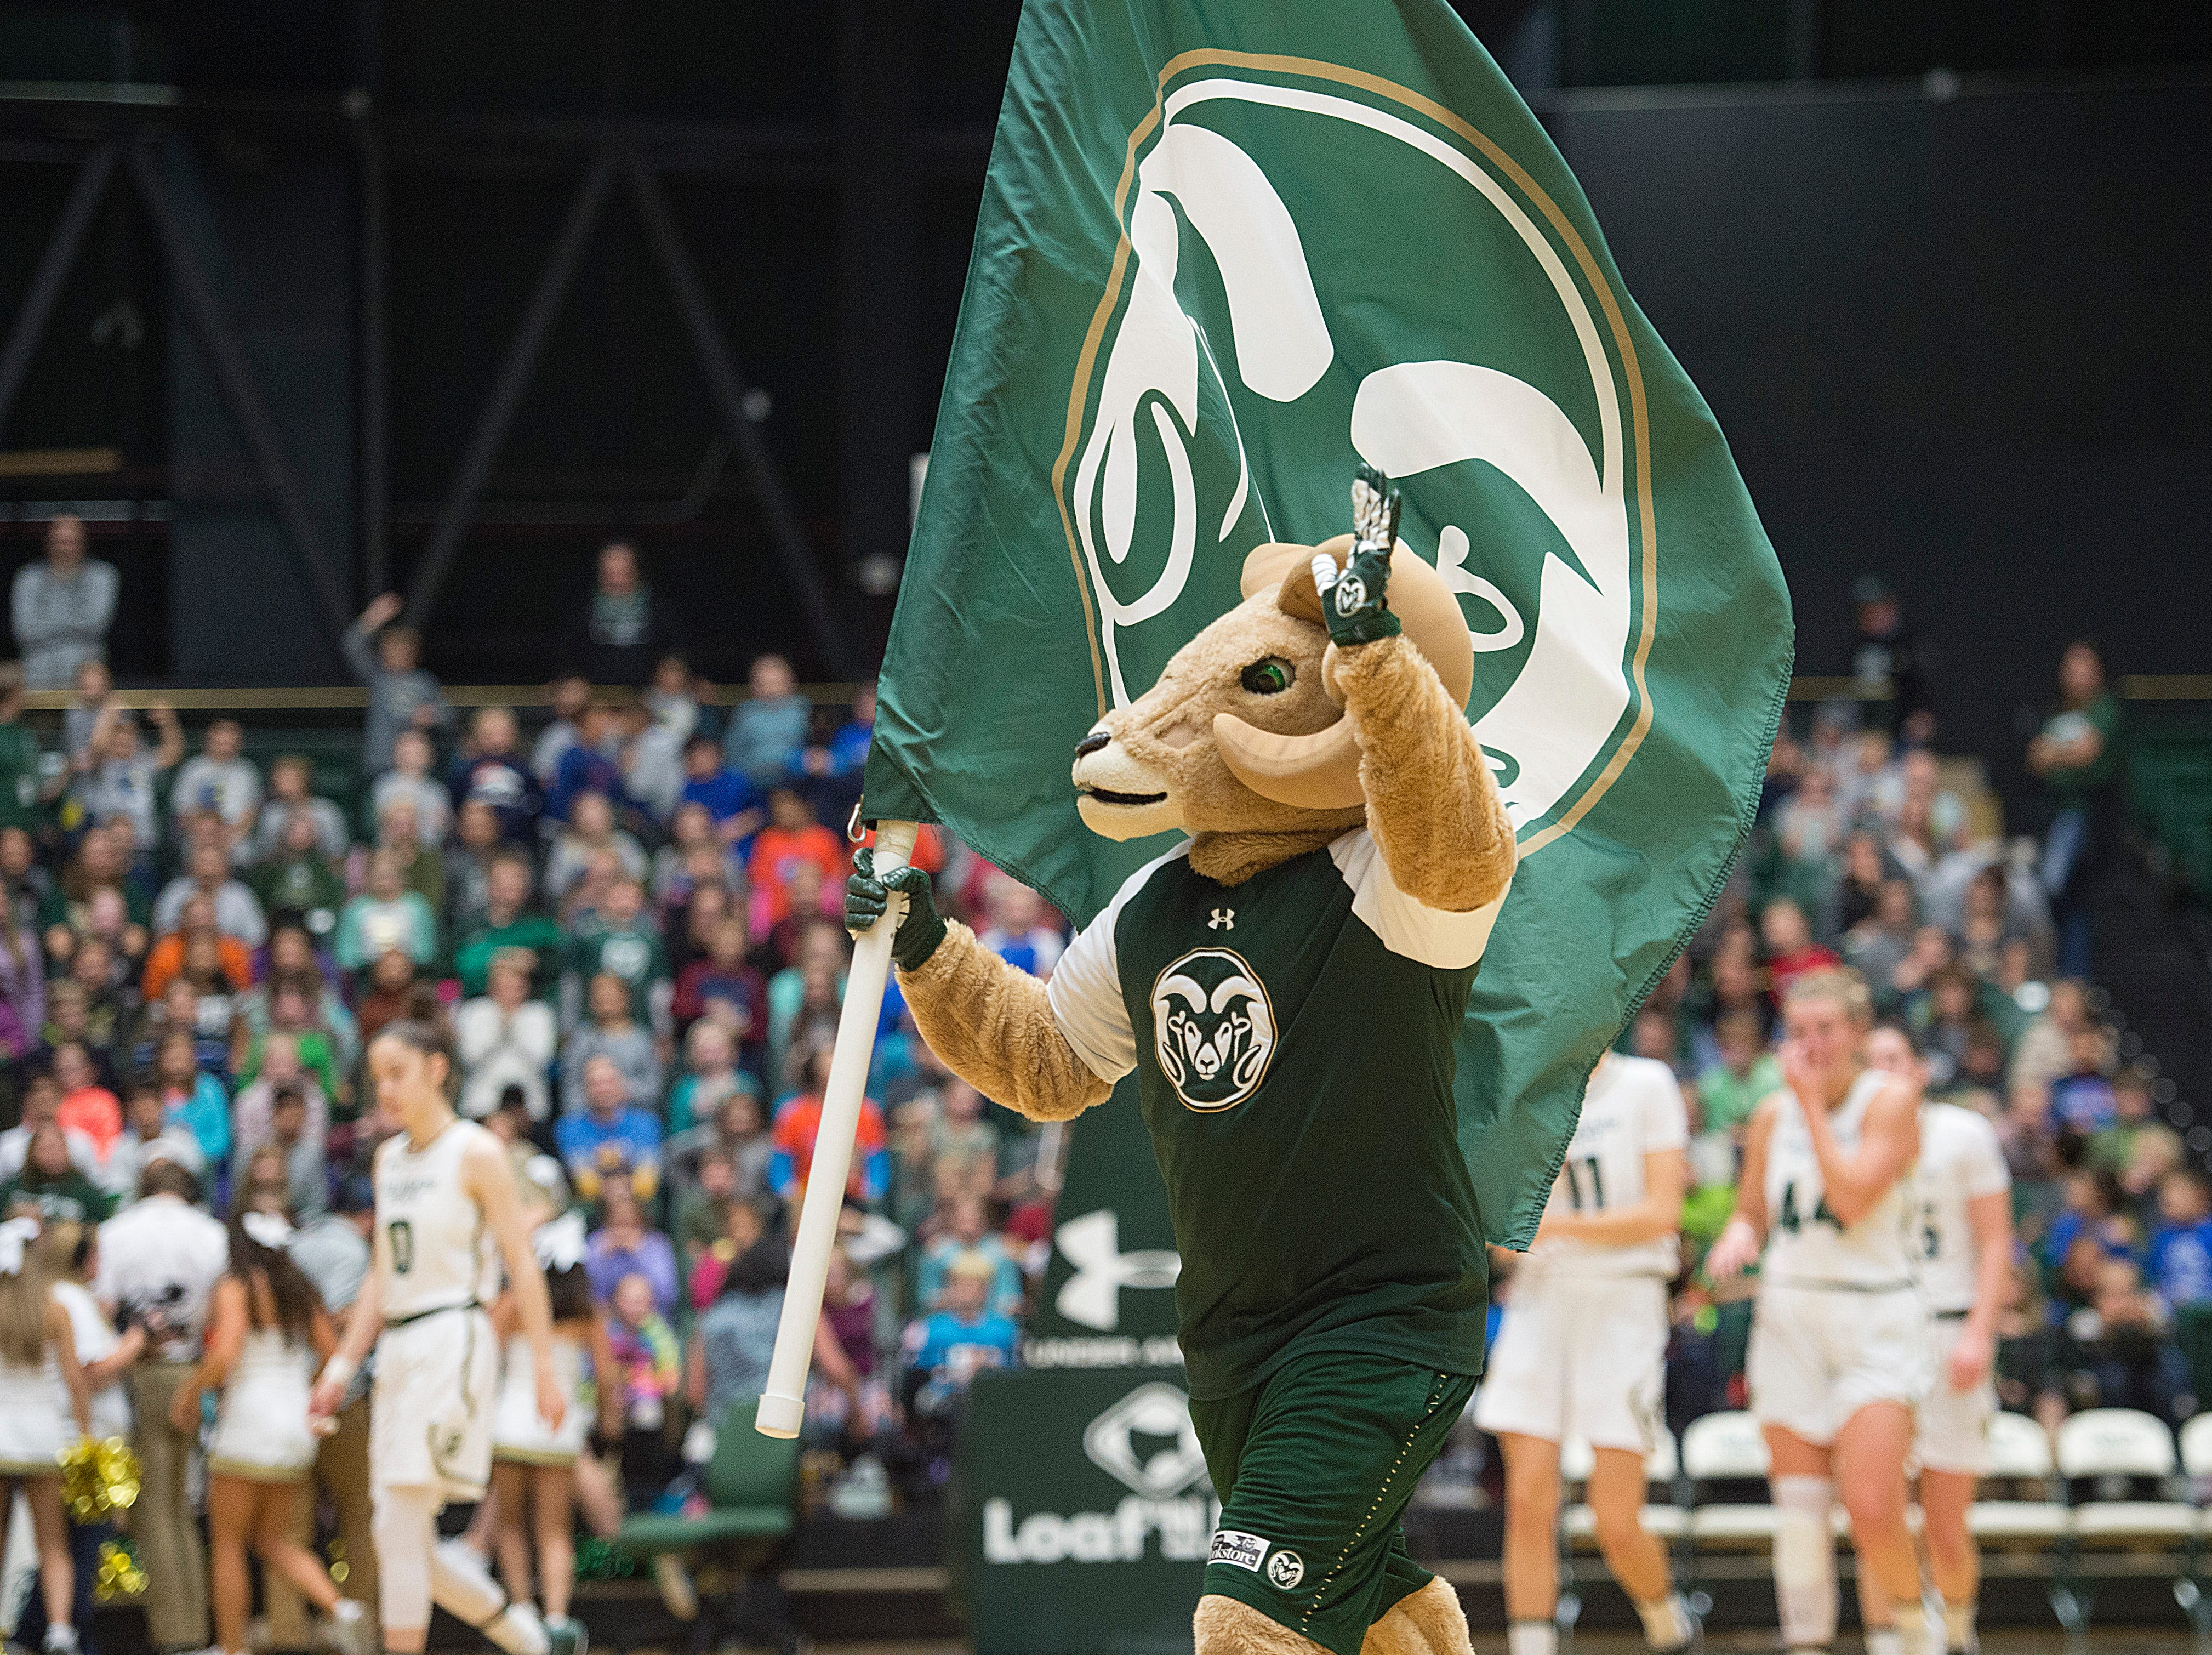 CSU mascot CAM the Ram hypes up the crowd during a game against Northern Arizona at Moby Arena on Wednesday, December 5, 2018.